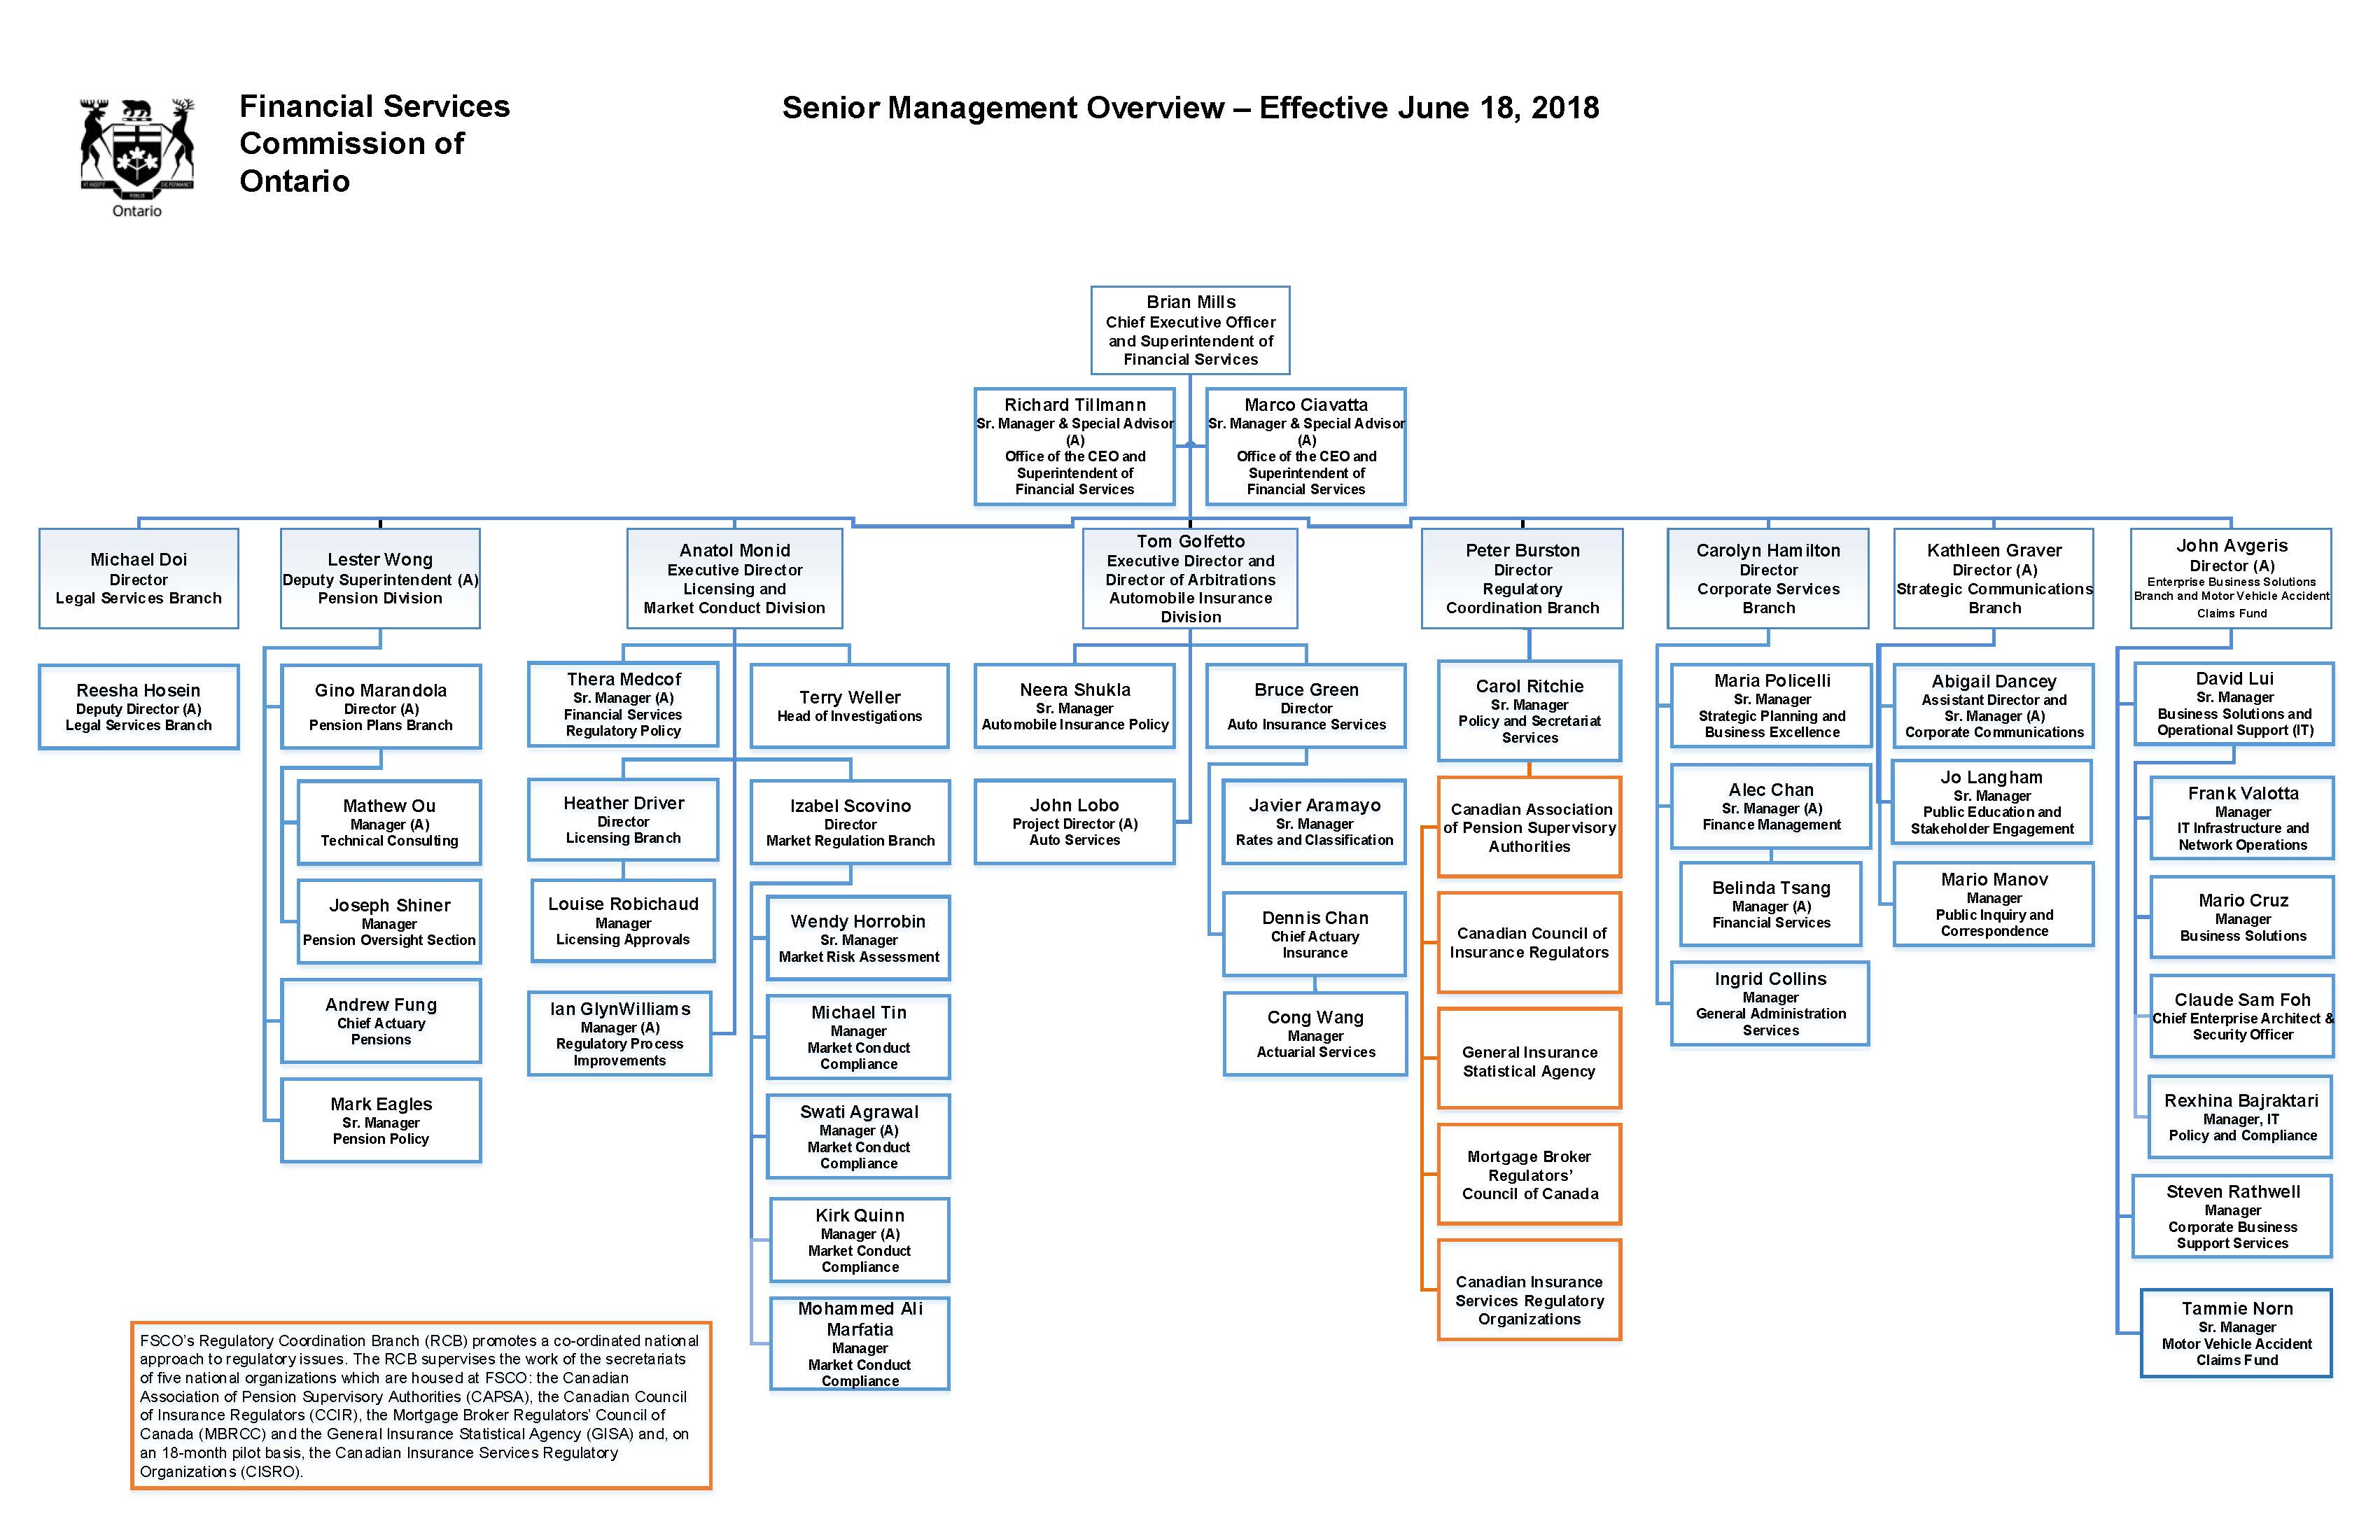 FSCO's Customer Service Commitment Management Overview Chart